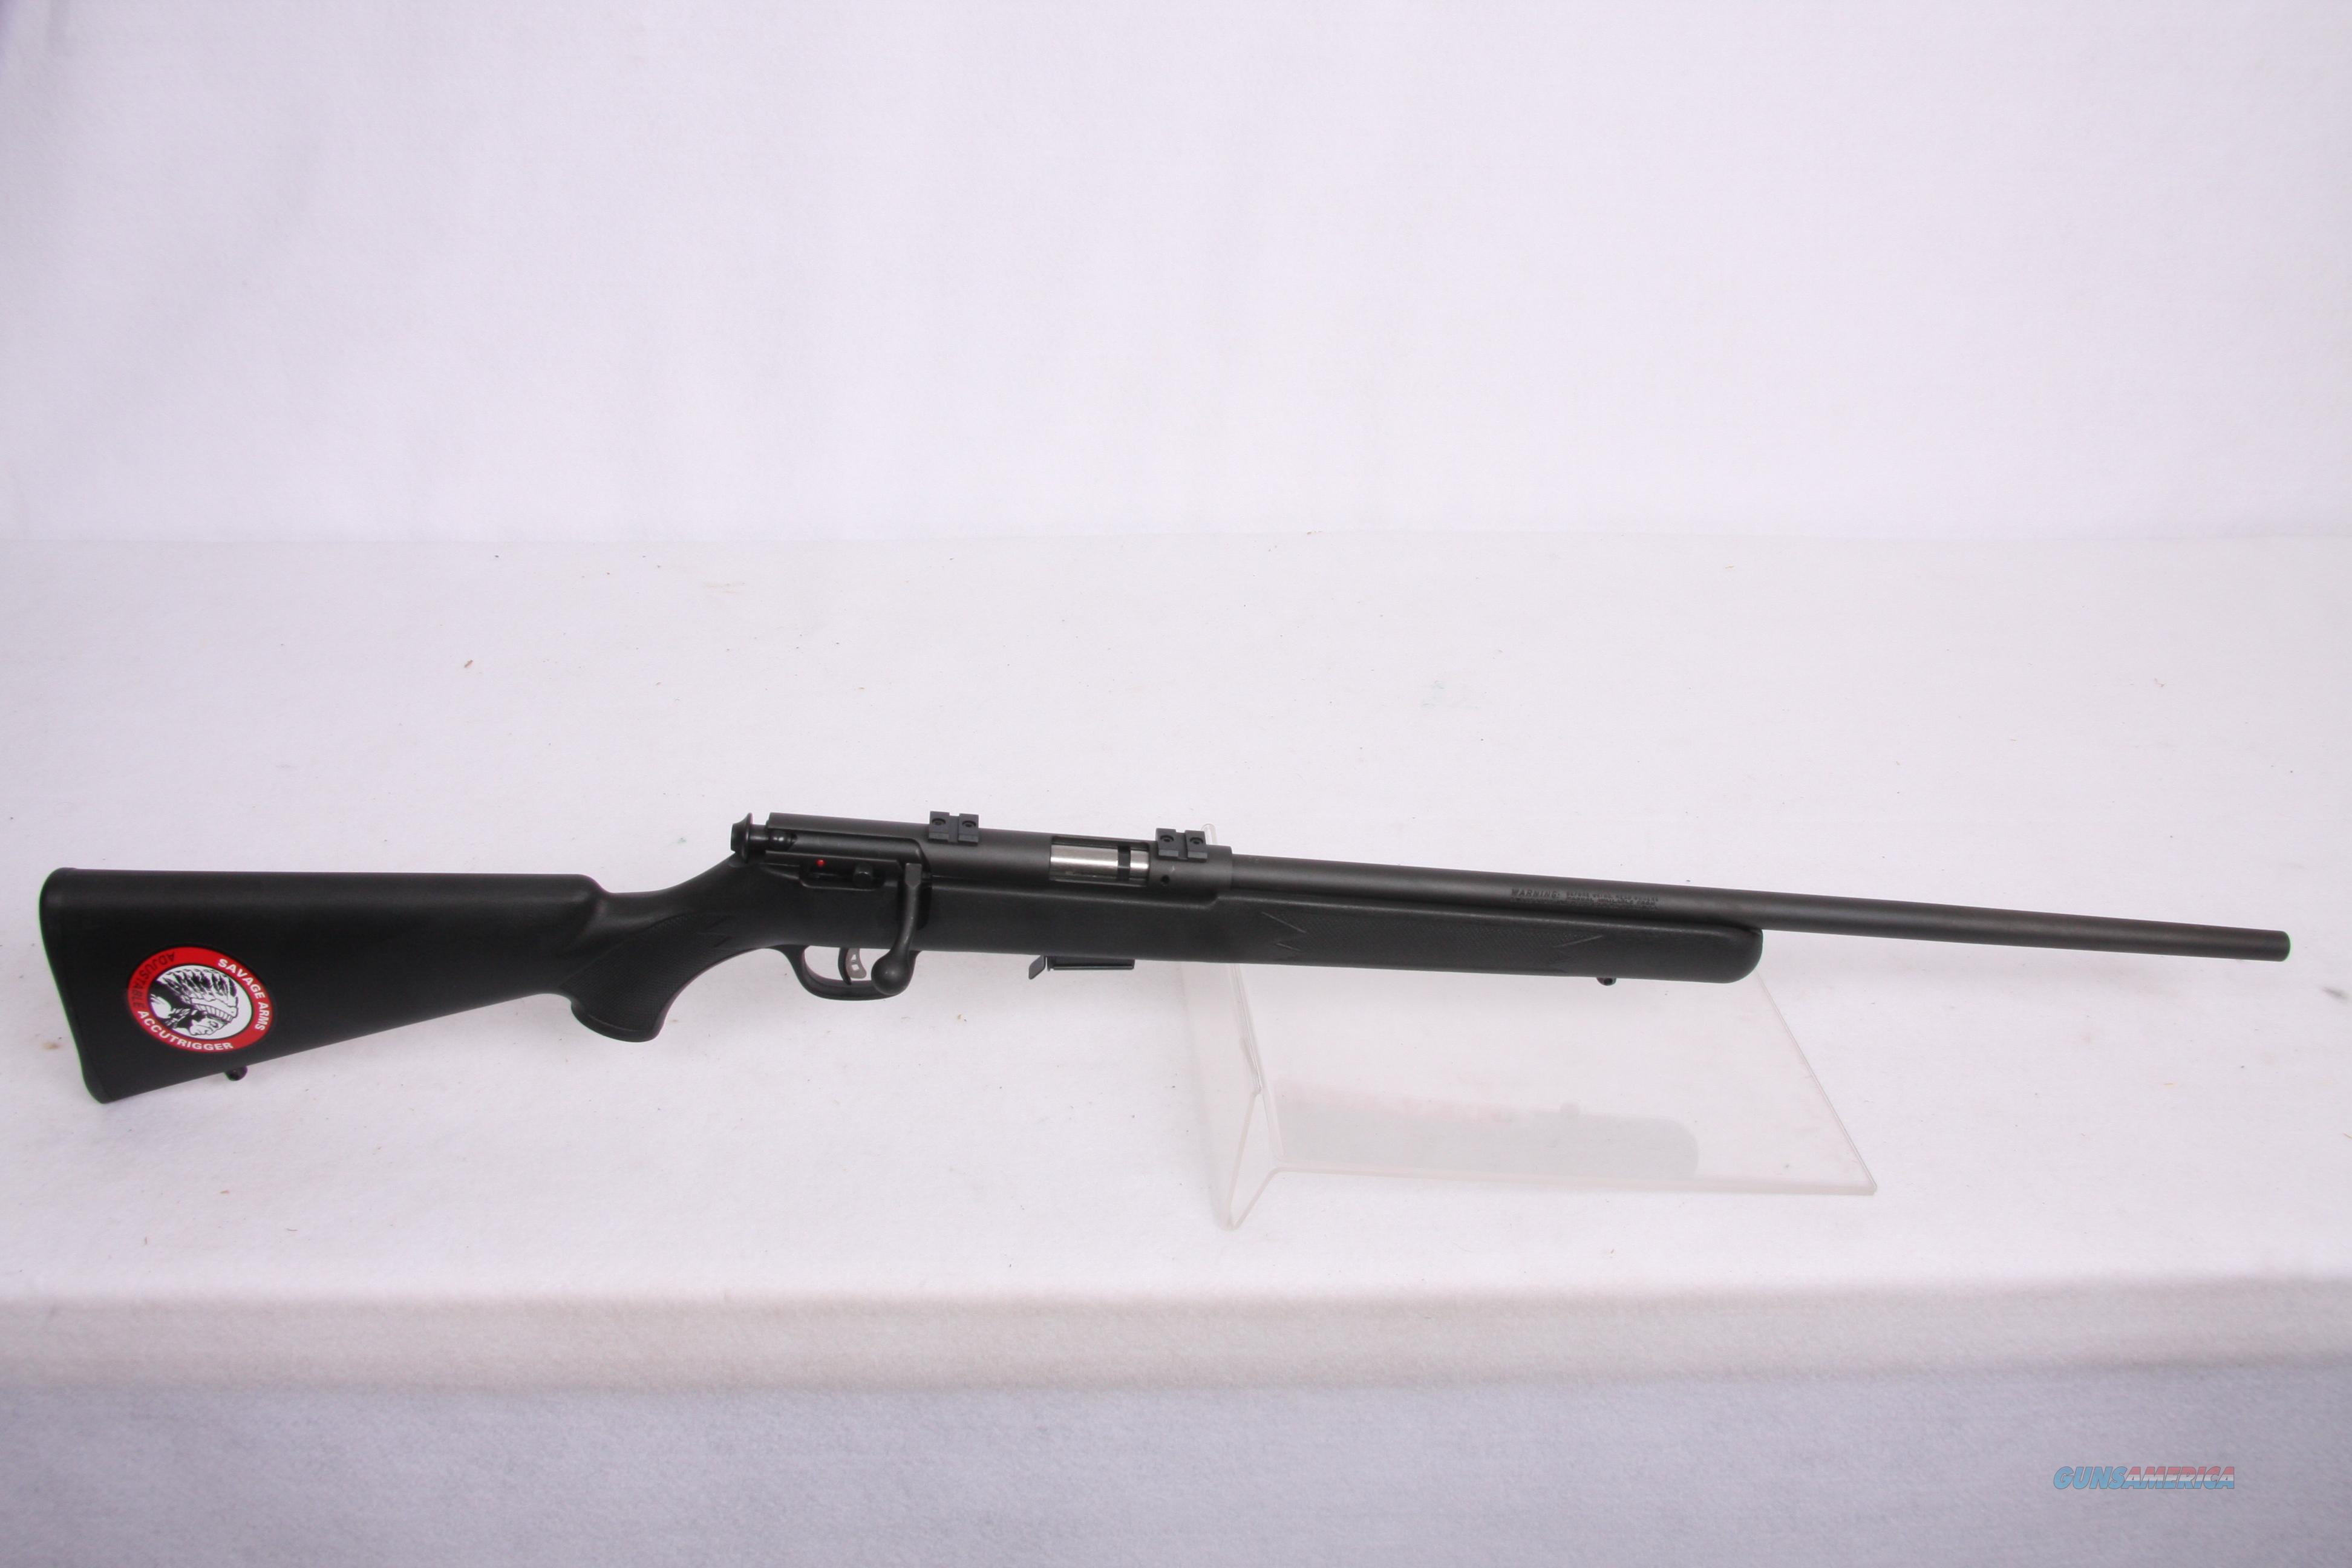 Savage 93R17 .17 Blk Syn  Guns > Rifles > Savage Rifles > Standard Bolt Action > Sporting